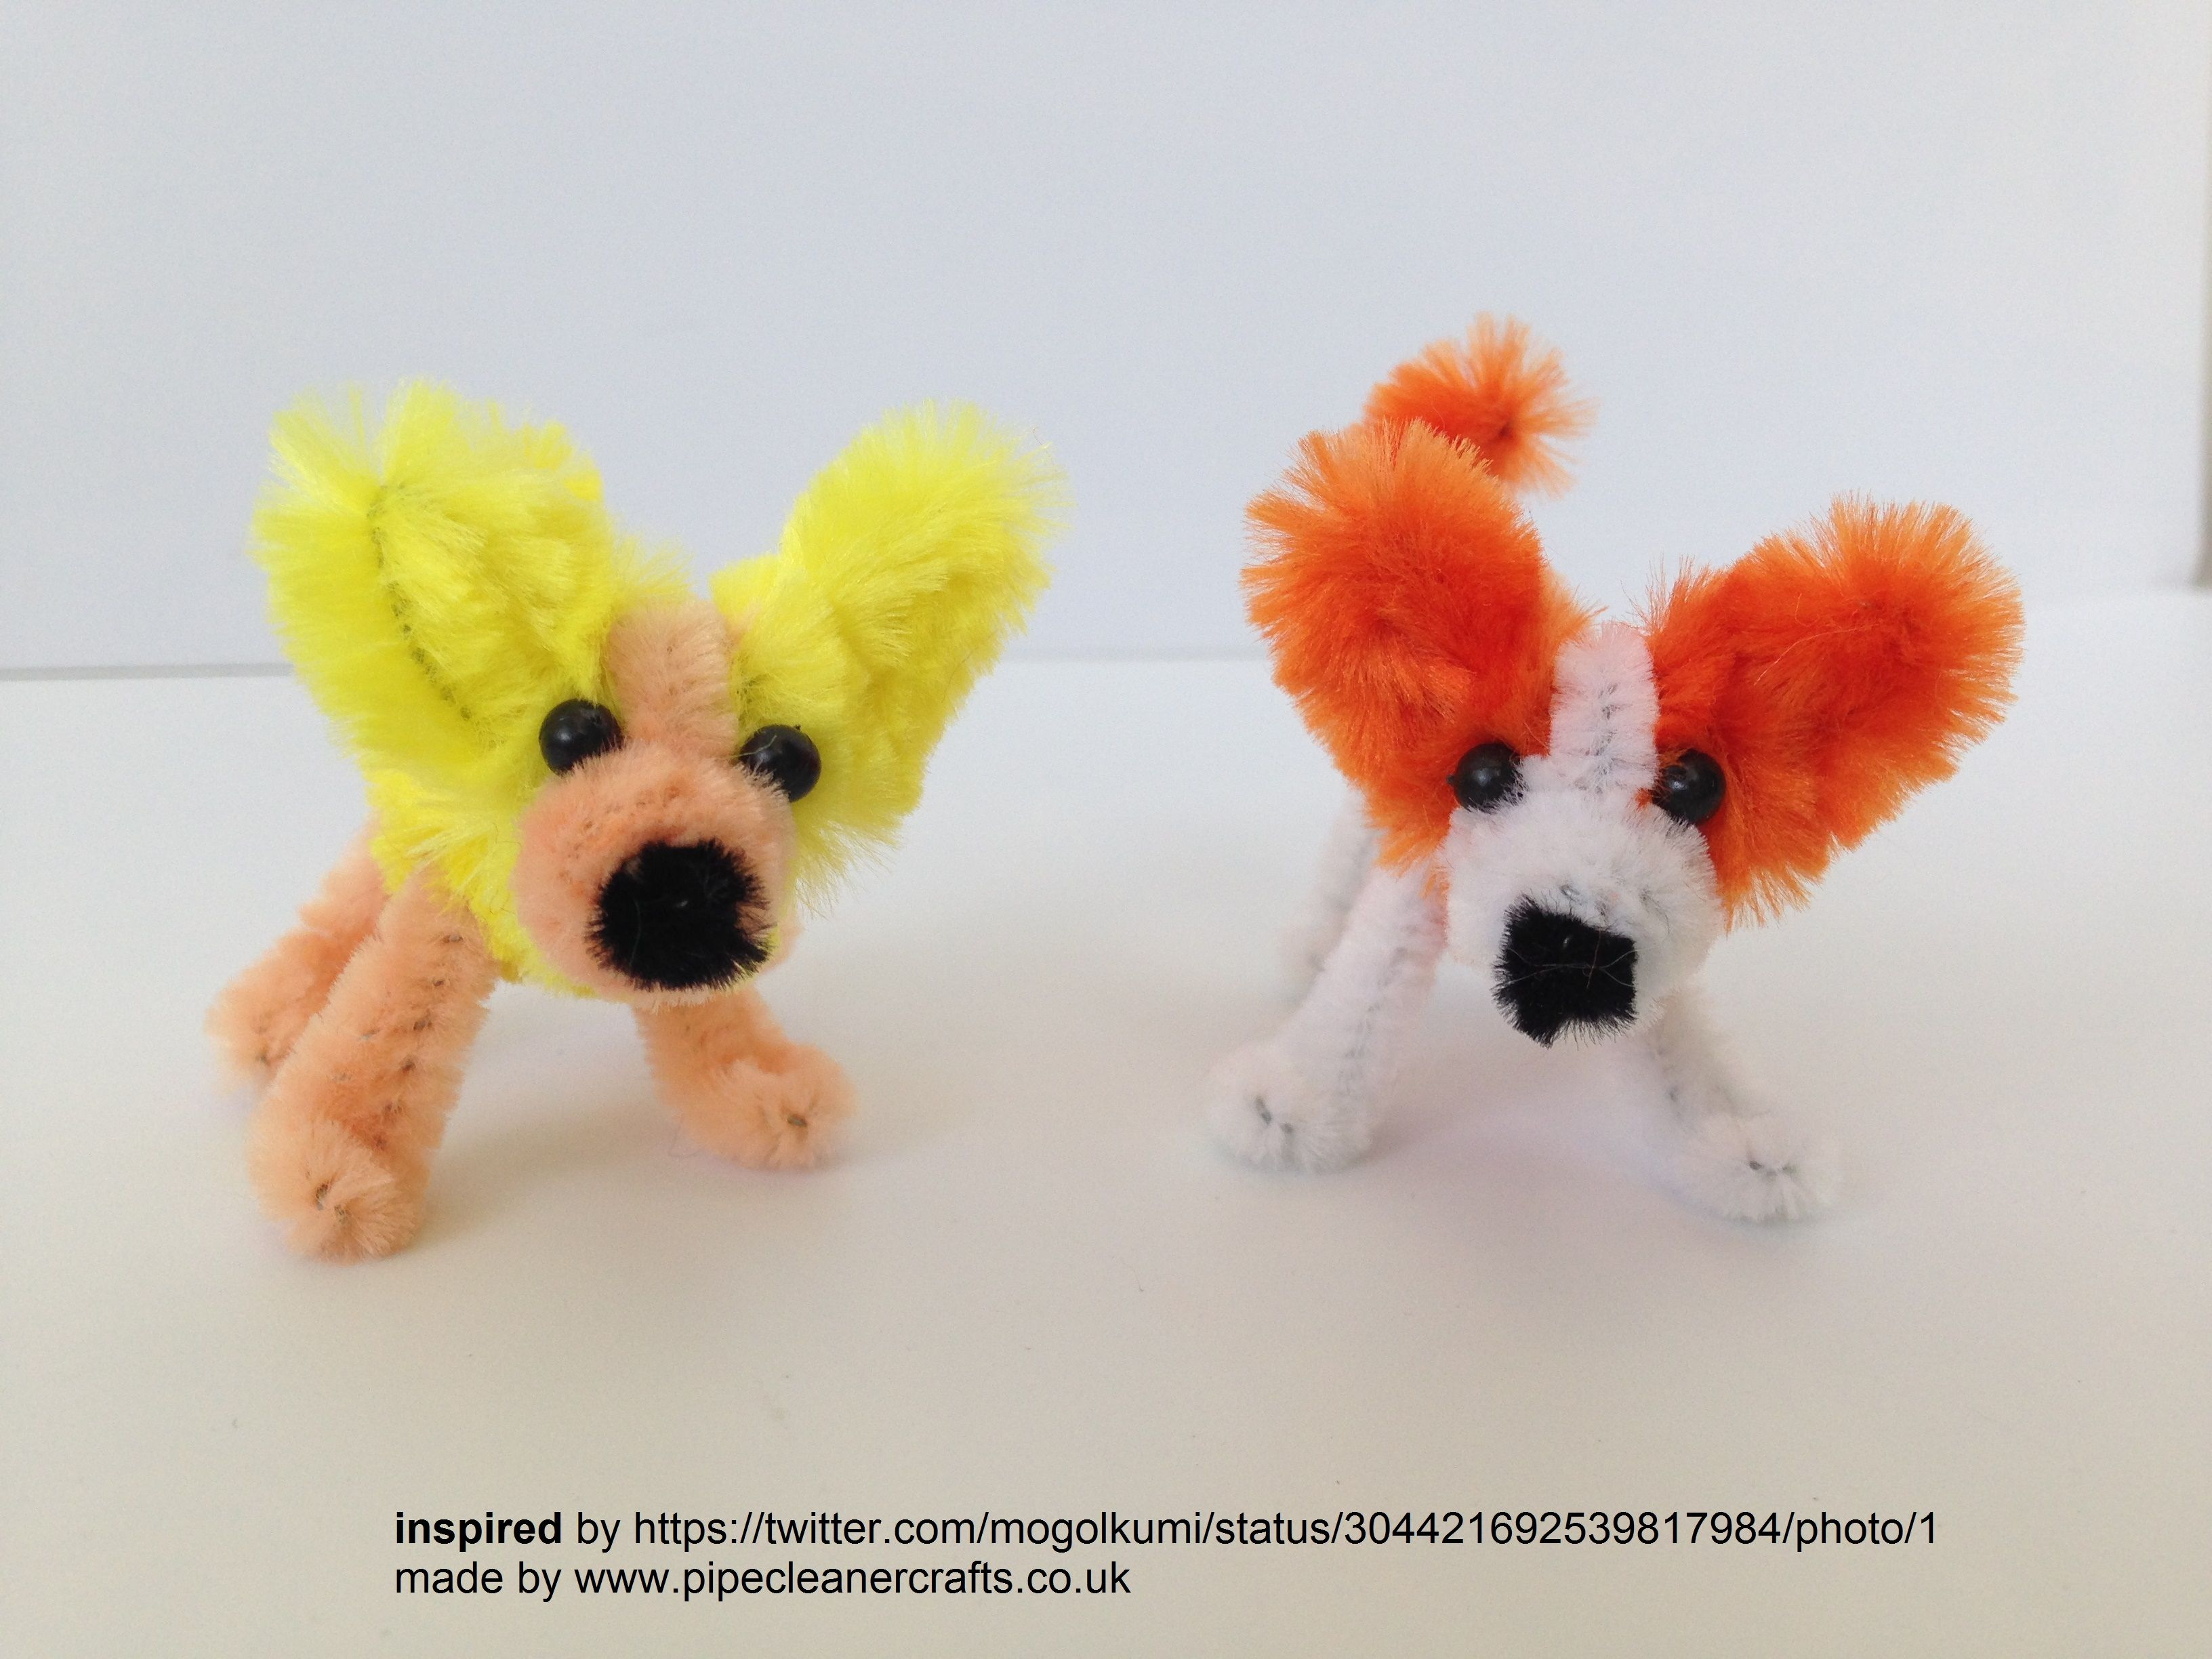 This dogs were INSPIRED by https://twitter.com/mogolkumi/status/304421692539817984/photo/1 I could only make them because the PALDA.co.il company sponsored me with these fluffy pipe cleaners